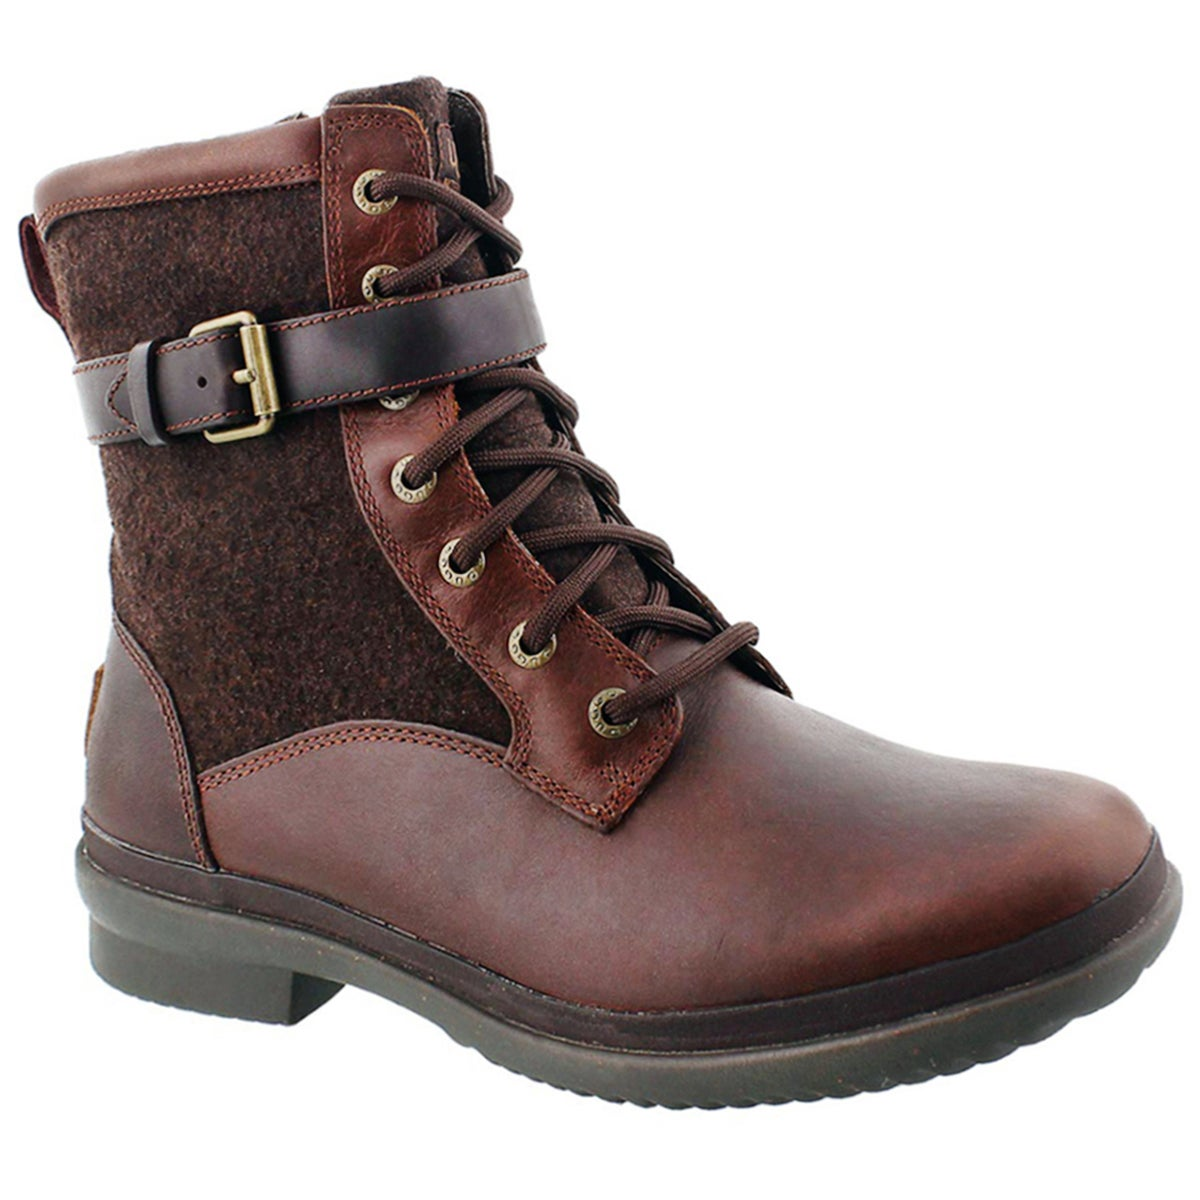 Lds Kesey chstnut lthr wtpf lace up boot